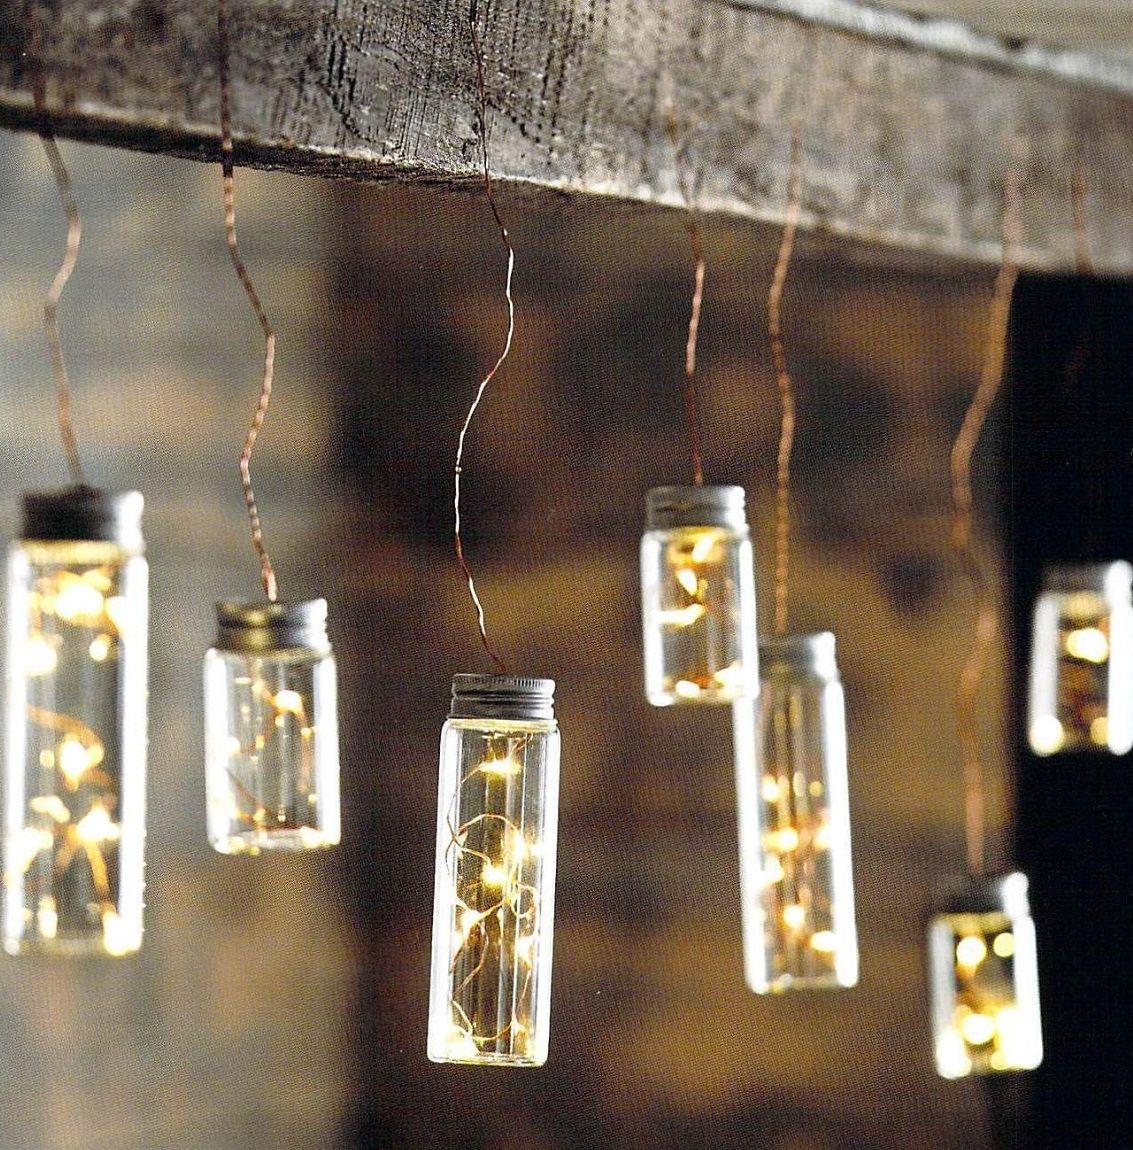 roost firefly bottle lights - Firefly Christmas Lights